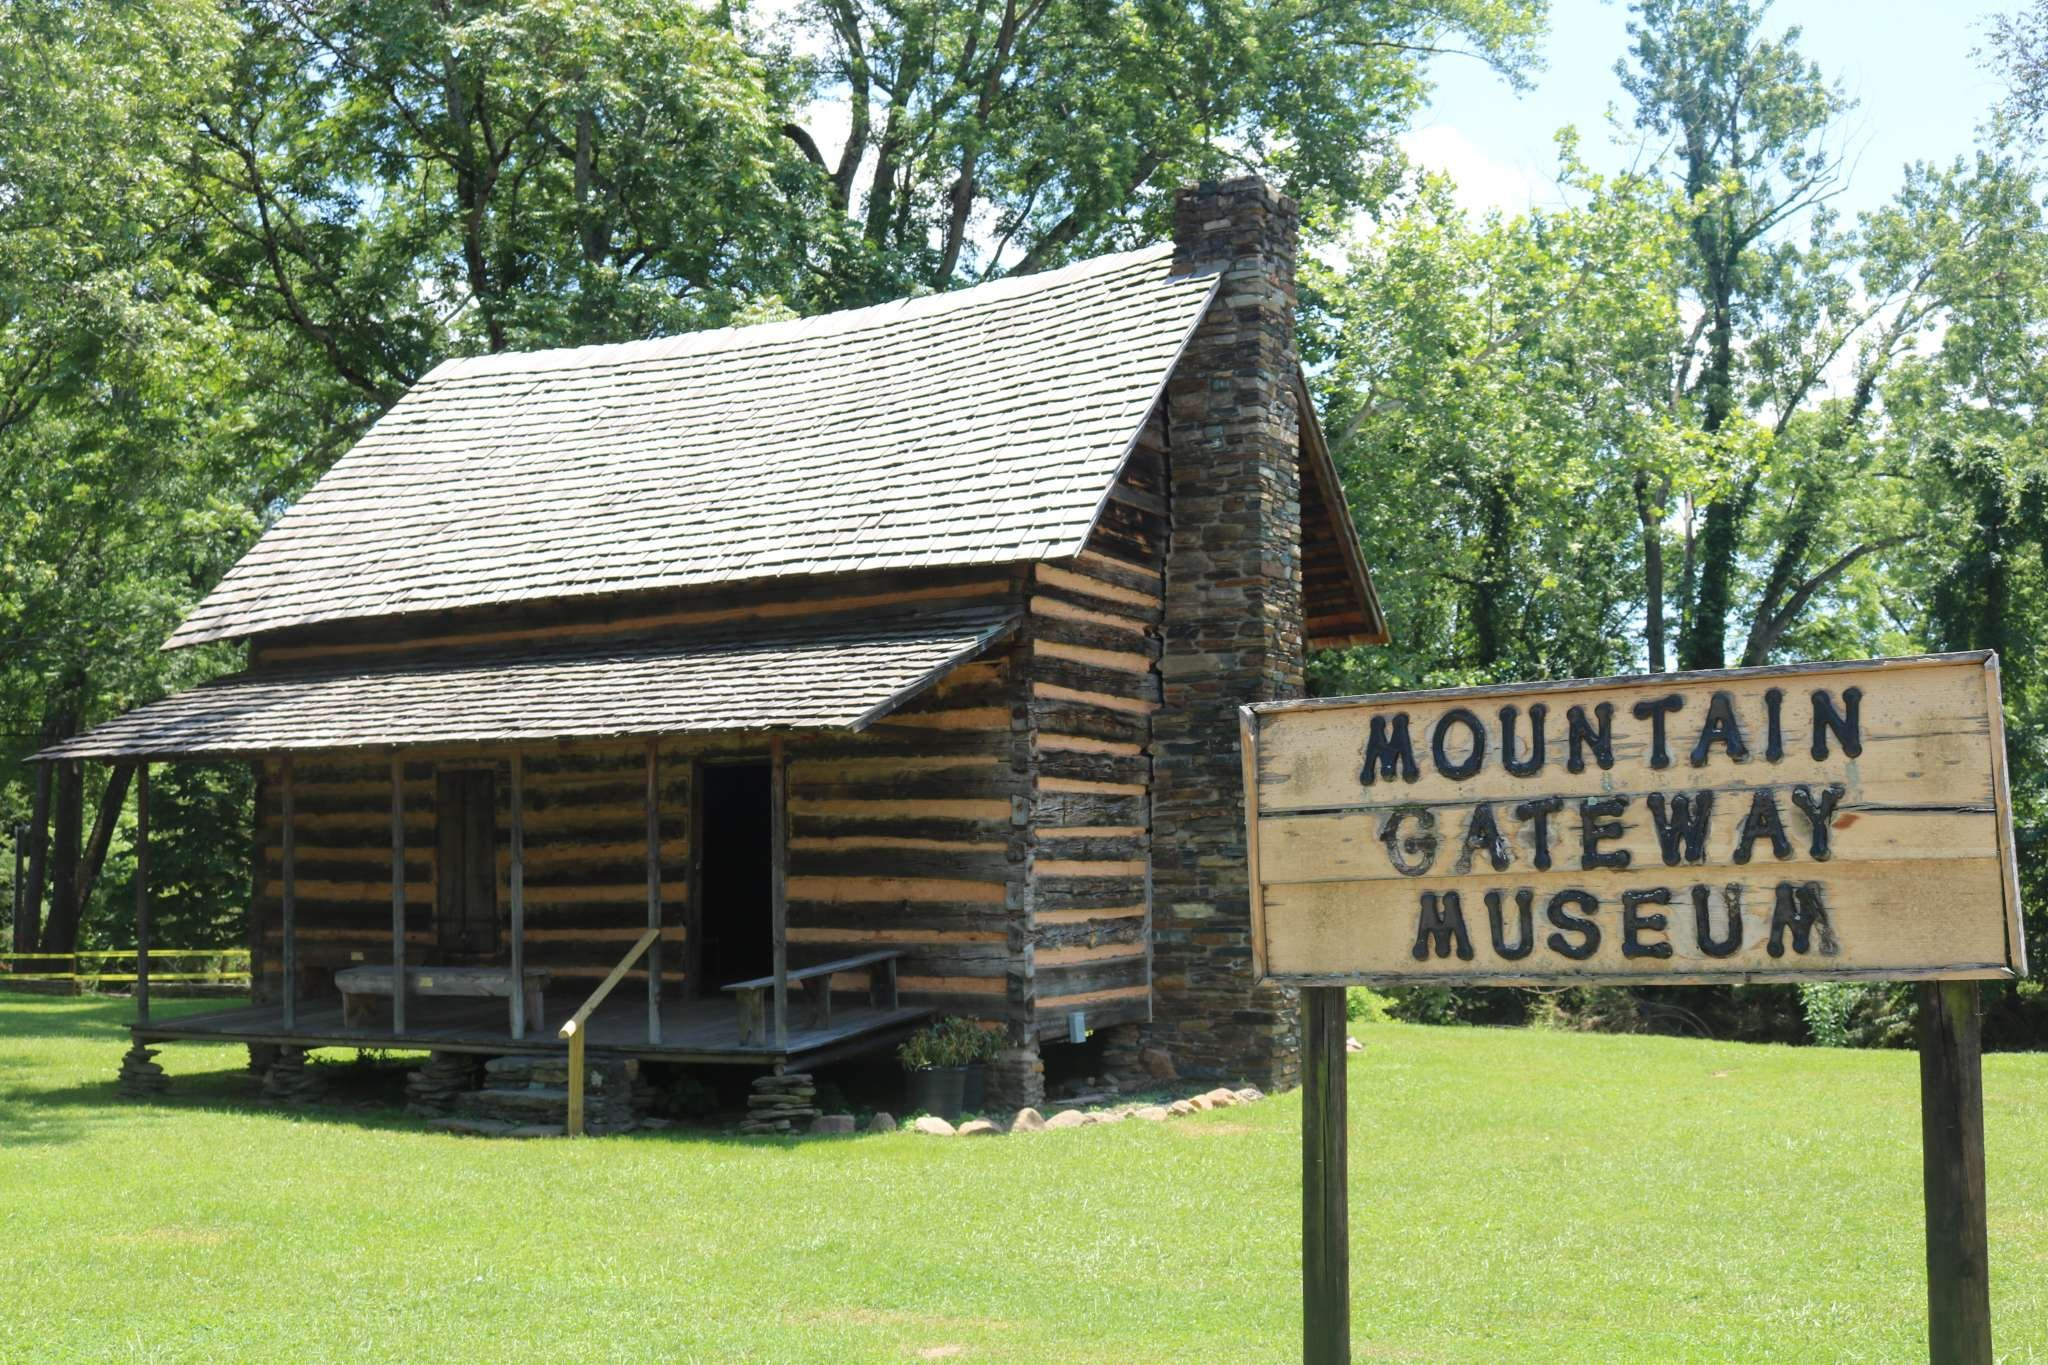 One of the cabins on the museum grounds